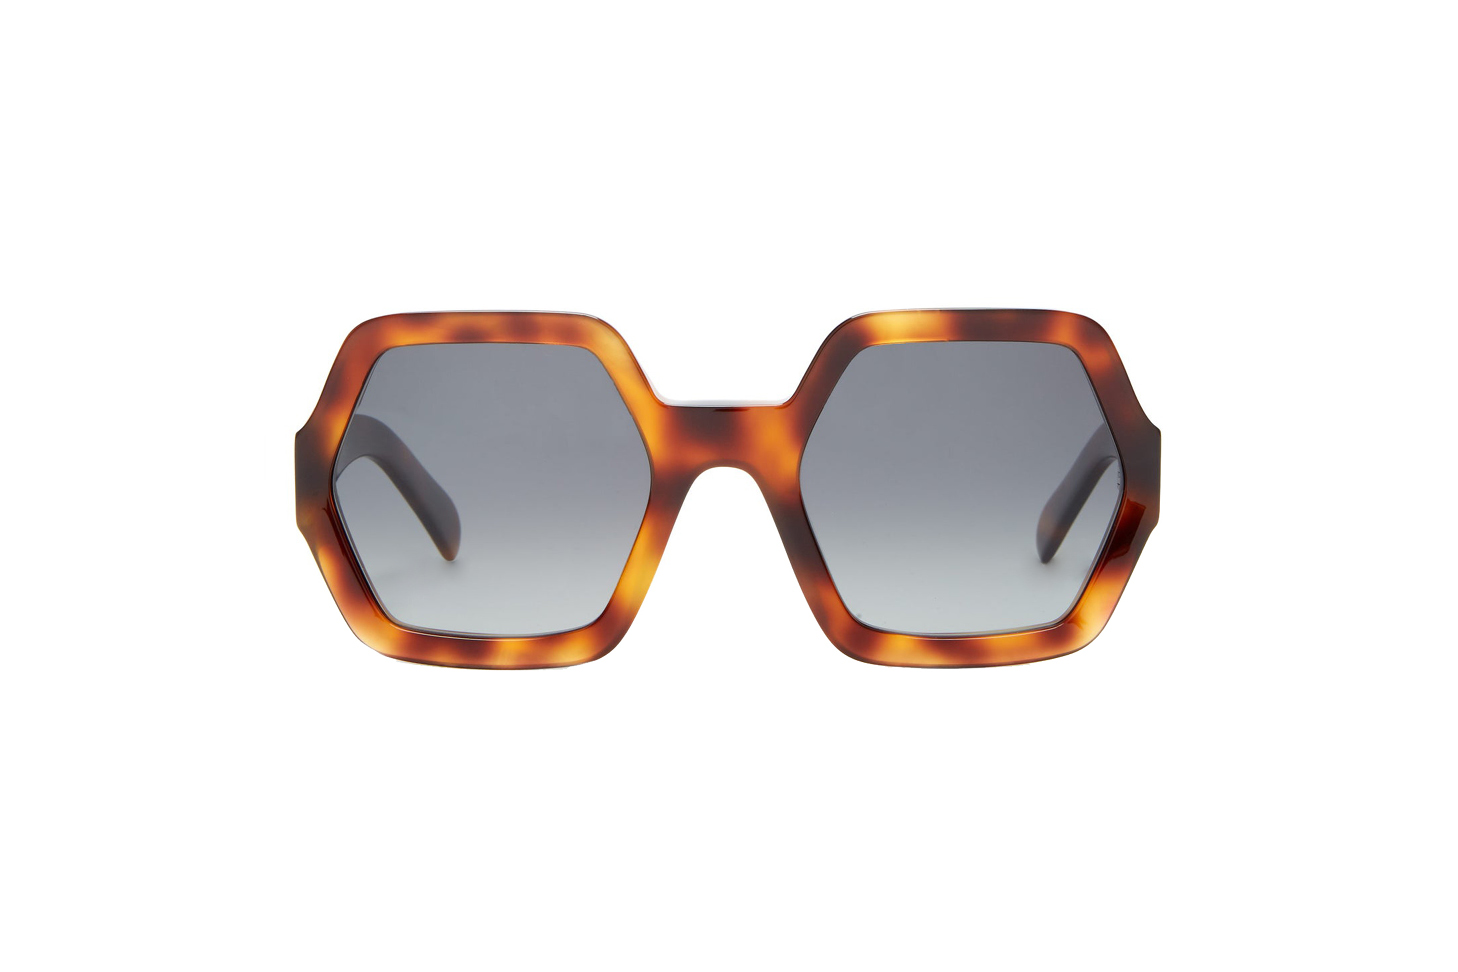 Celine Oversized Sunglasses in Acetate with Polarized Lenses